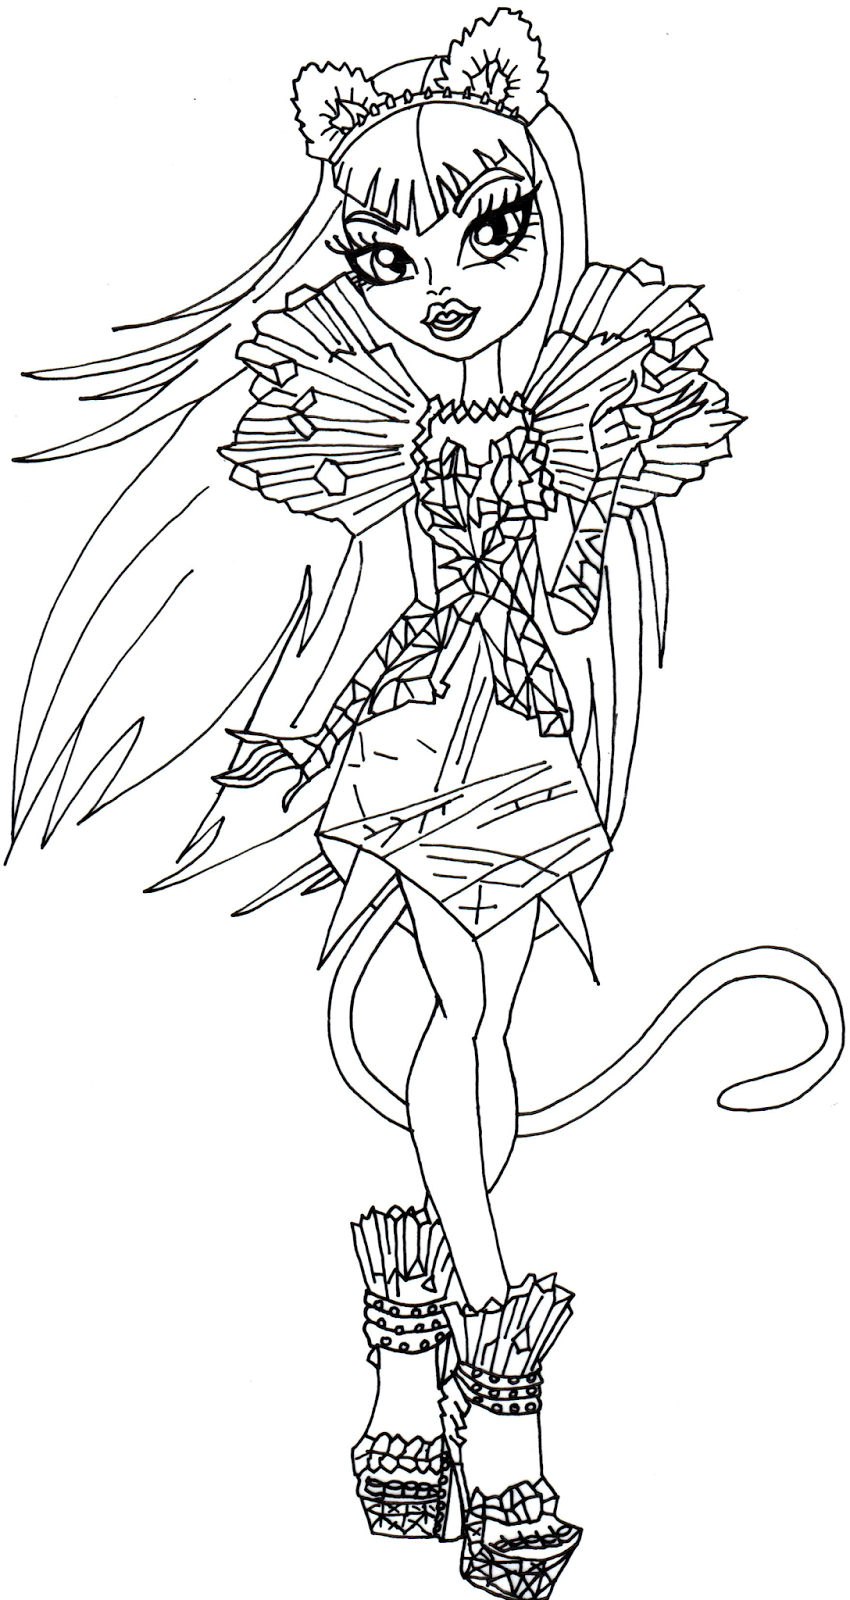 Free Printable Monster High Coloring Pages Catty Noir Boo High Coloring Pages Printables